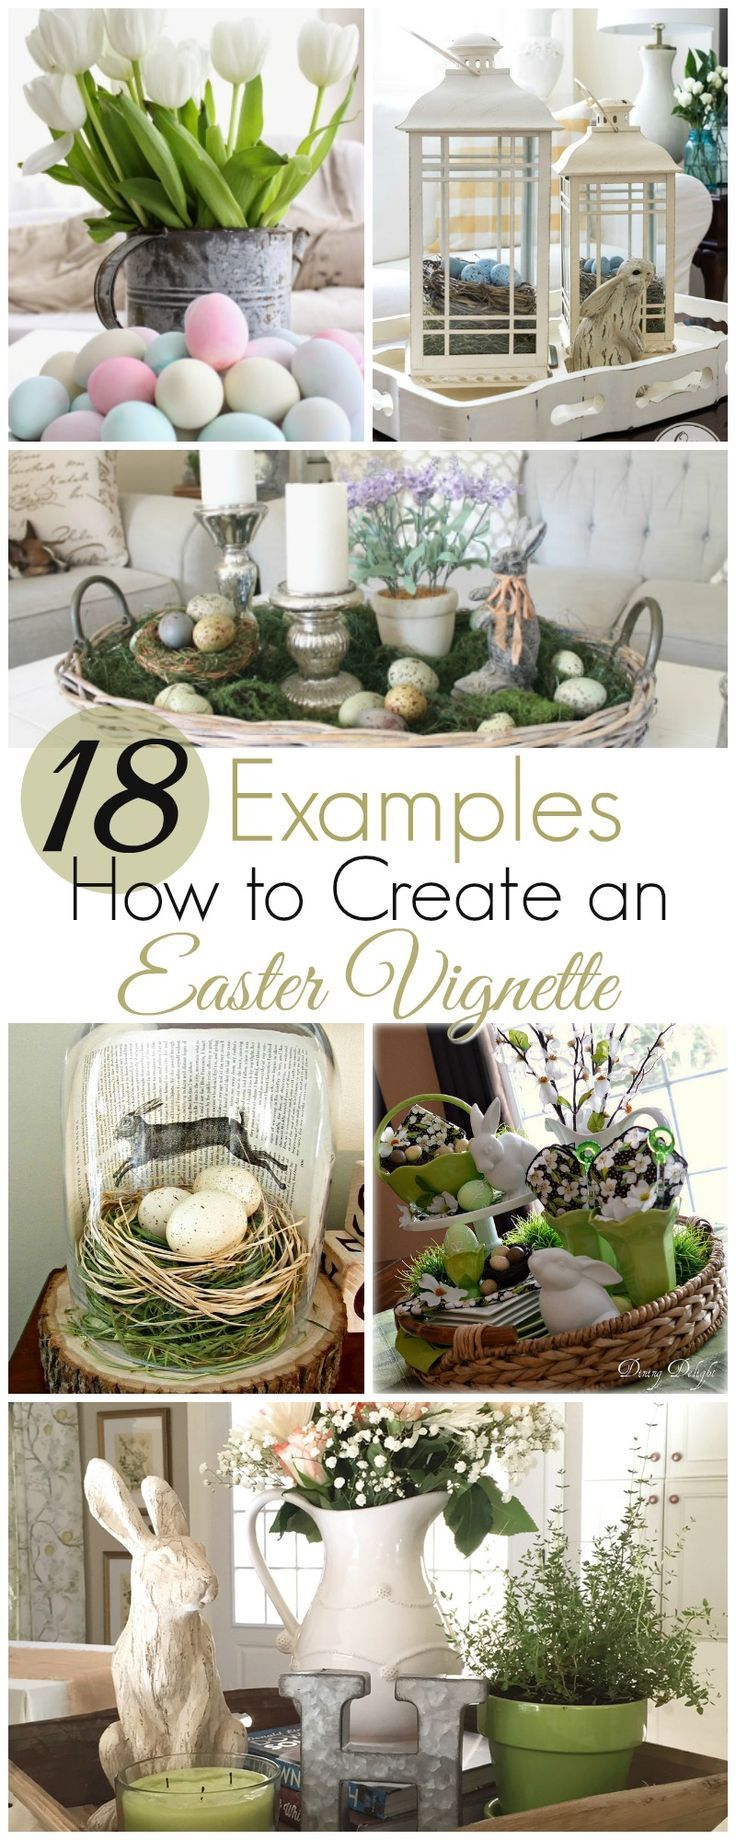 Tips on how to create an Easter Vignette using 18 examples of stunning vignettes!  http://awonderfulthought.com